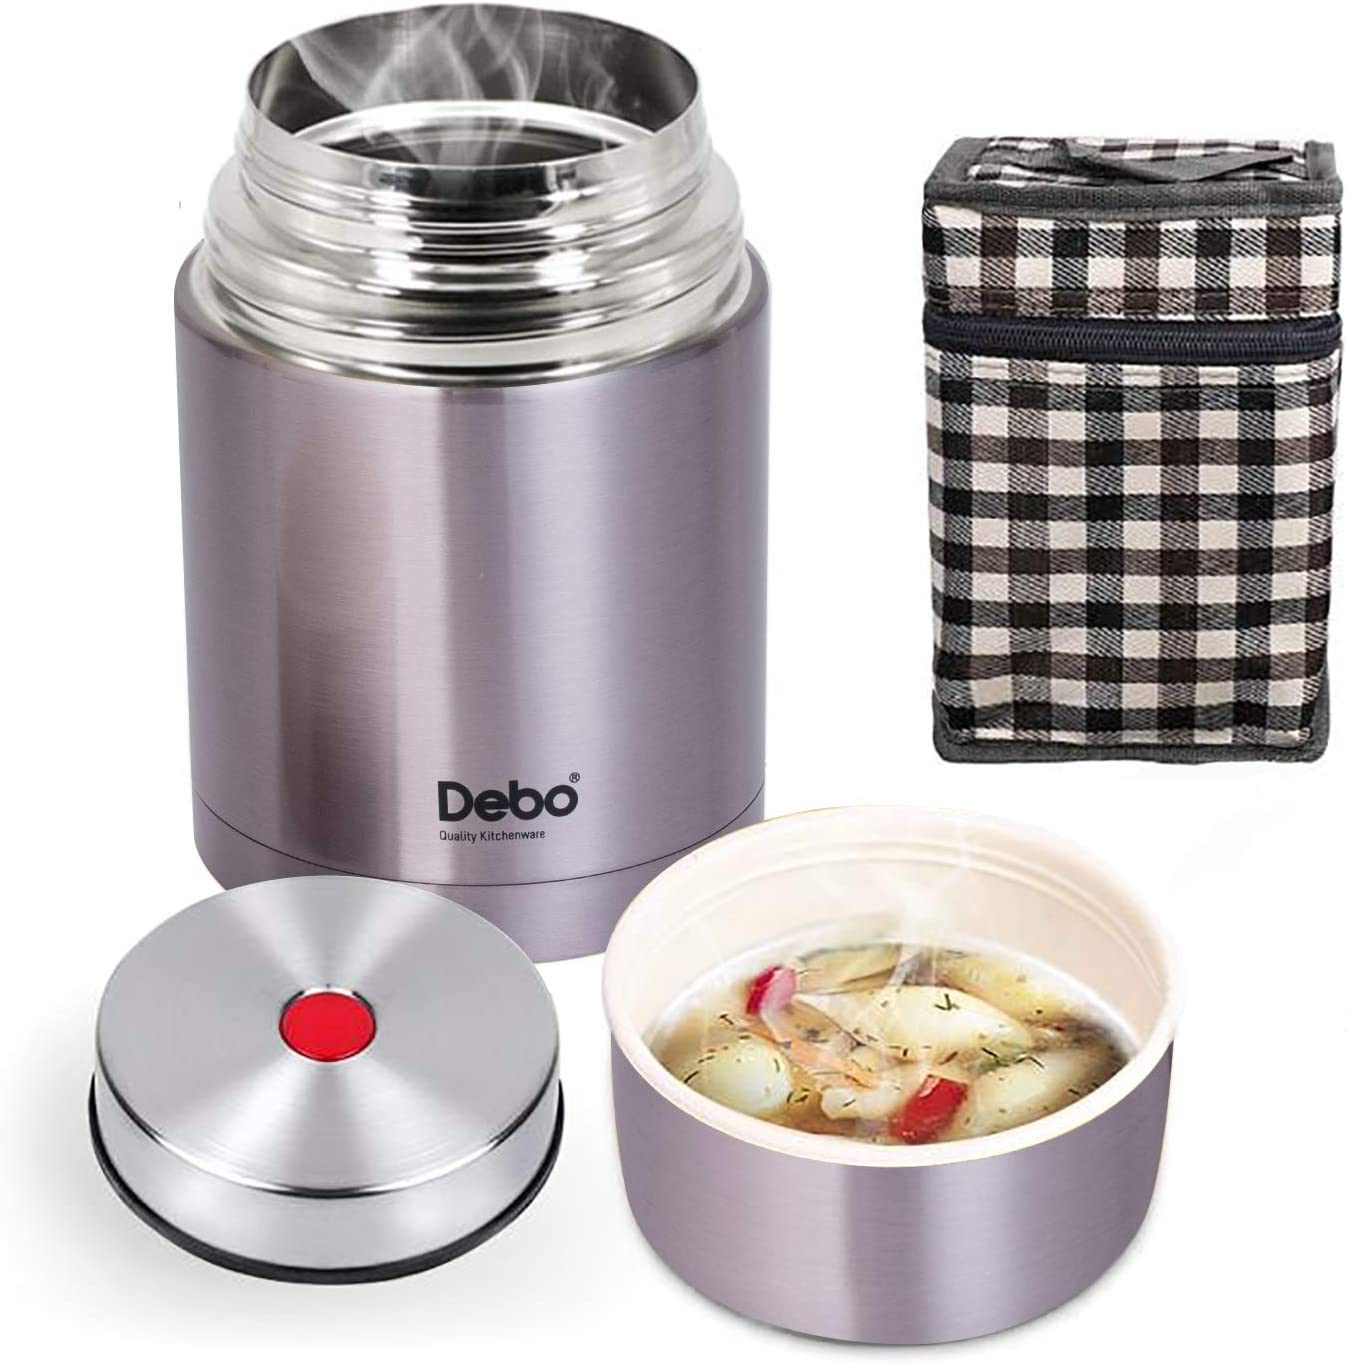 Thermos For Hot Food Thermos Food Jar Food Thermos 18/8 Stainless Steel Bpa-Free 26 Ounce Keeps Food Liquid Hot or Cold 24 Hours for Kids School Lunches Bring Lunch to Work Purple…